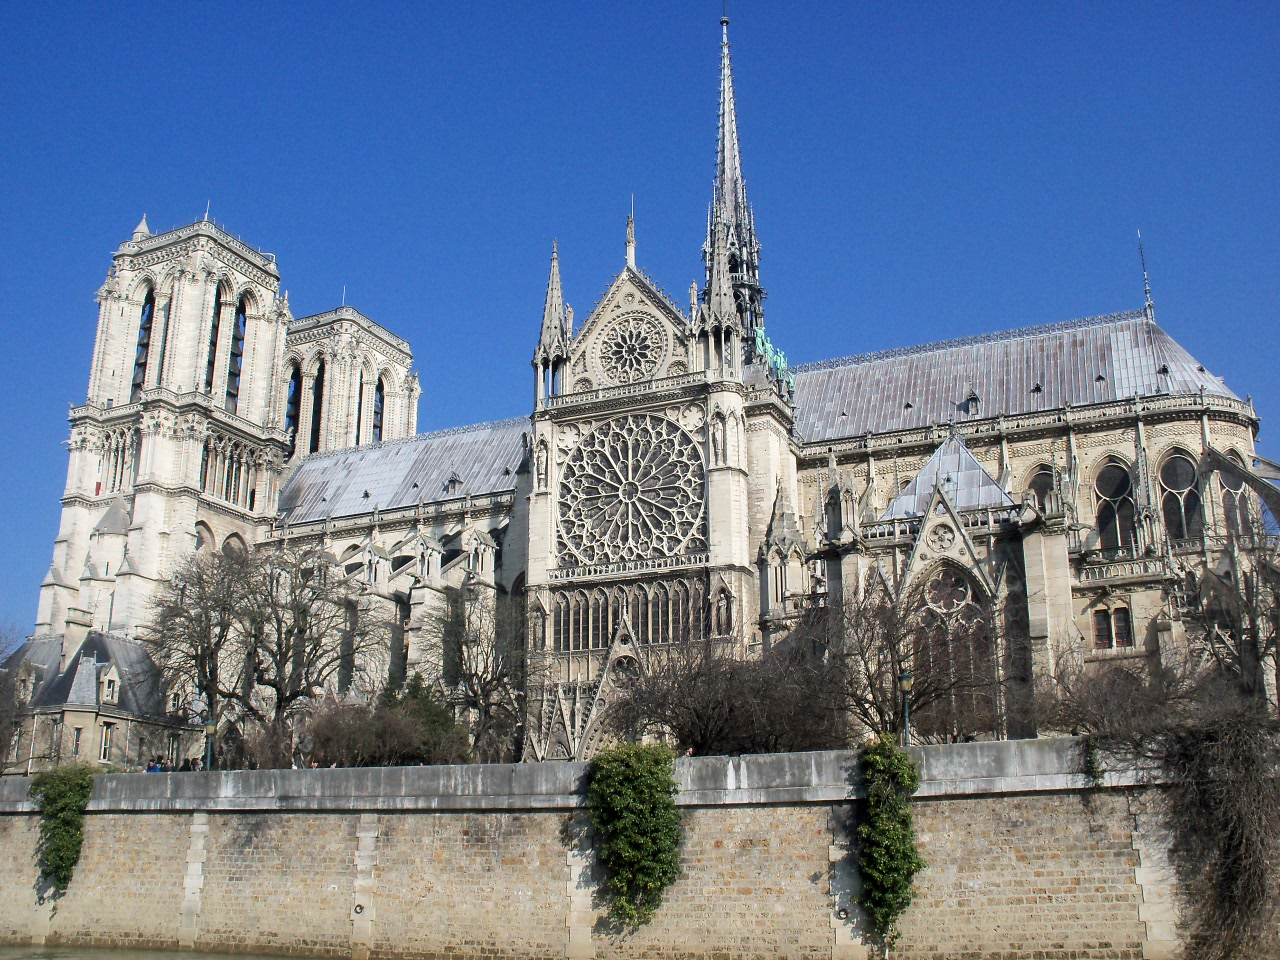 Exterior: Notre Dame Cathedral – Exterior